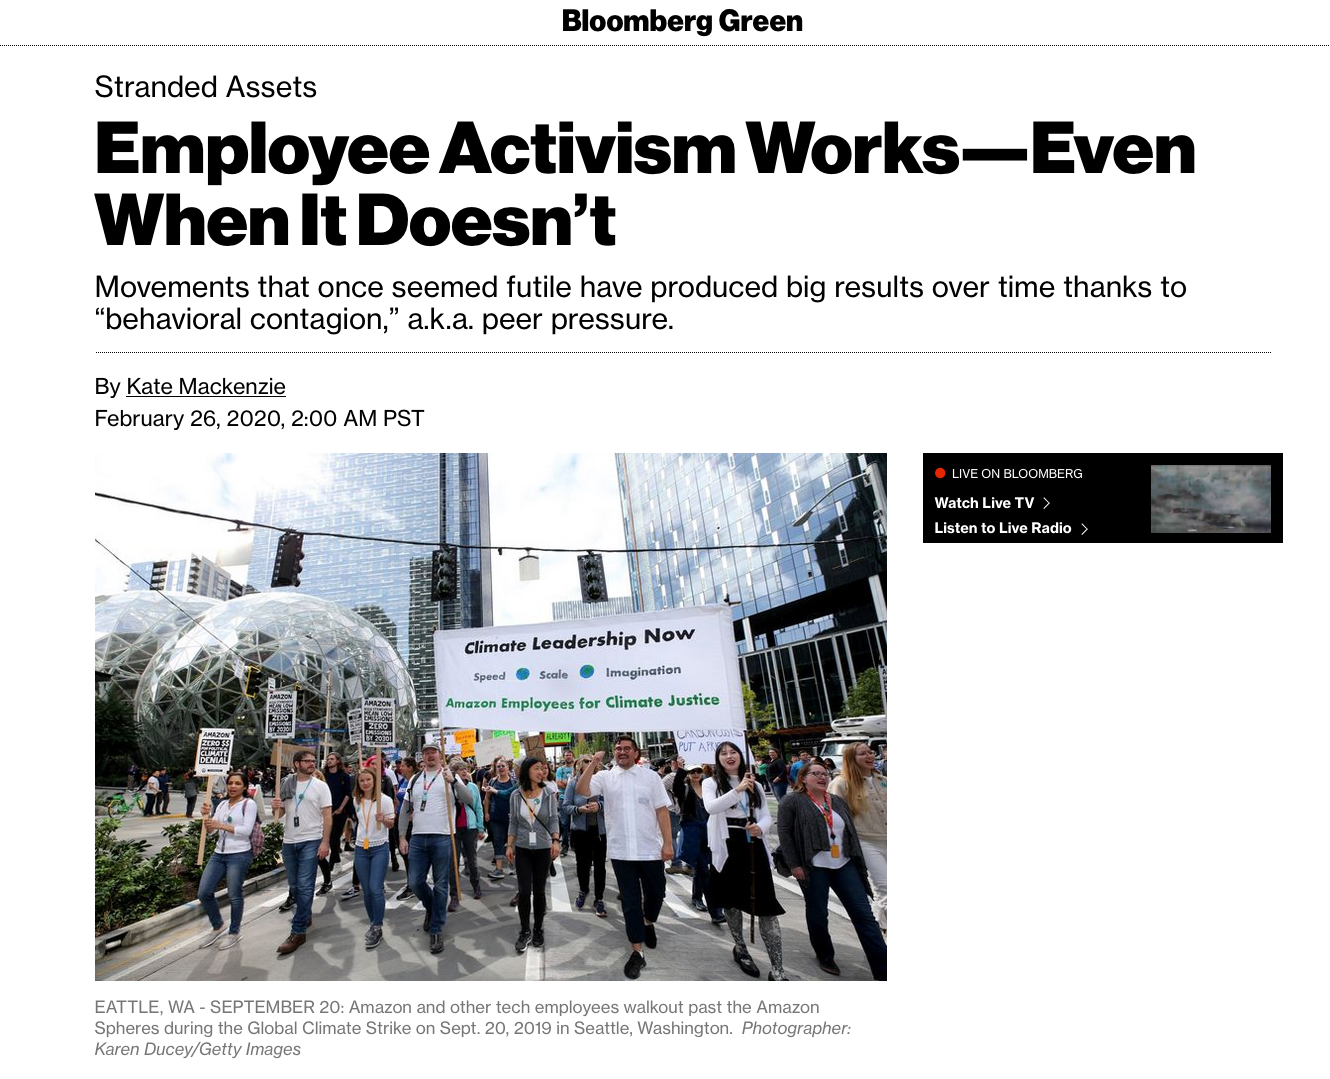 {quote}Employee Activism Works–Even When It Doesn't{quote}. Photos for Getty Images. Published in Bloomberg Green on February 26, 2020.